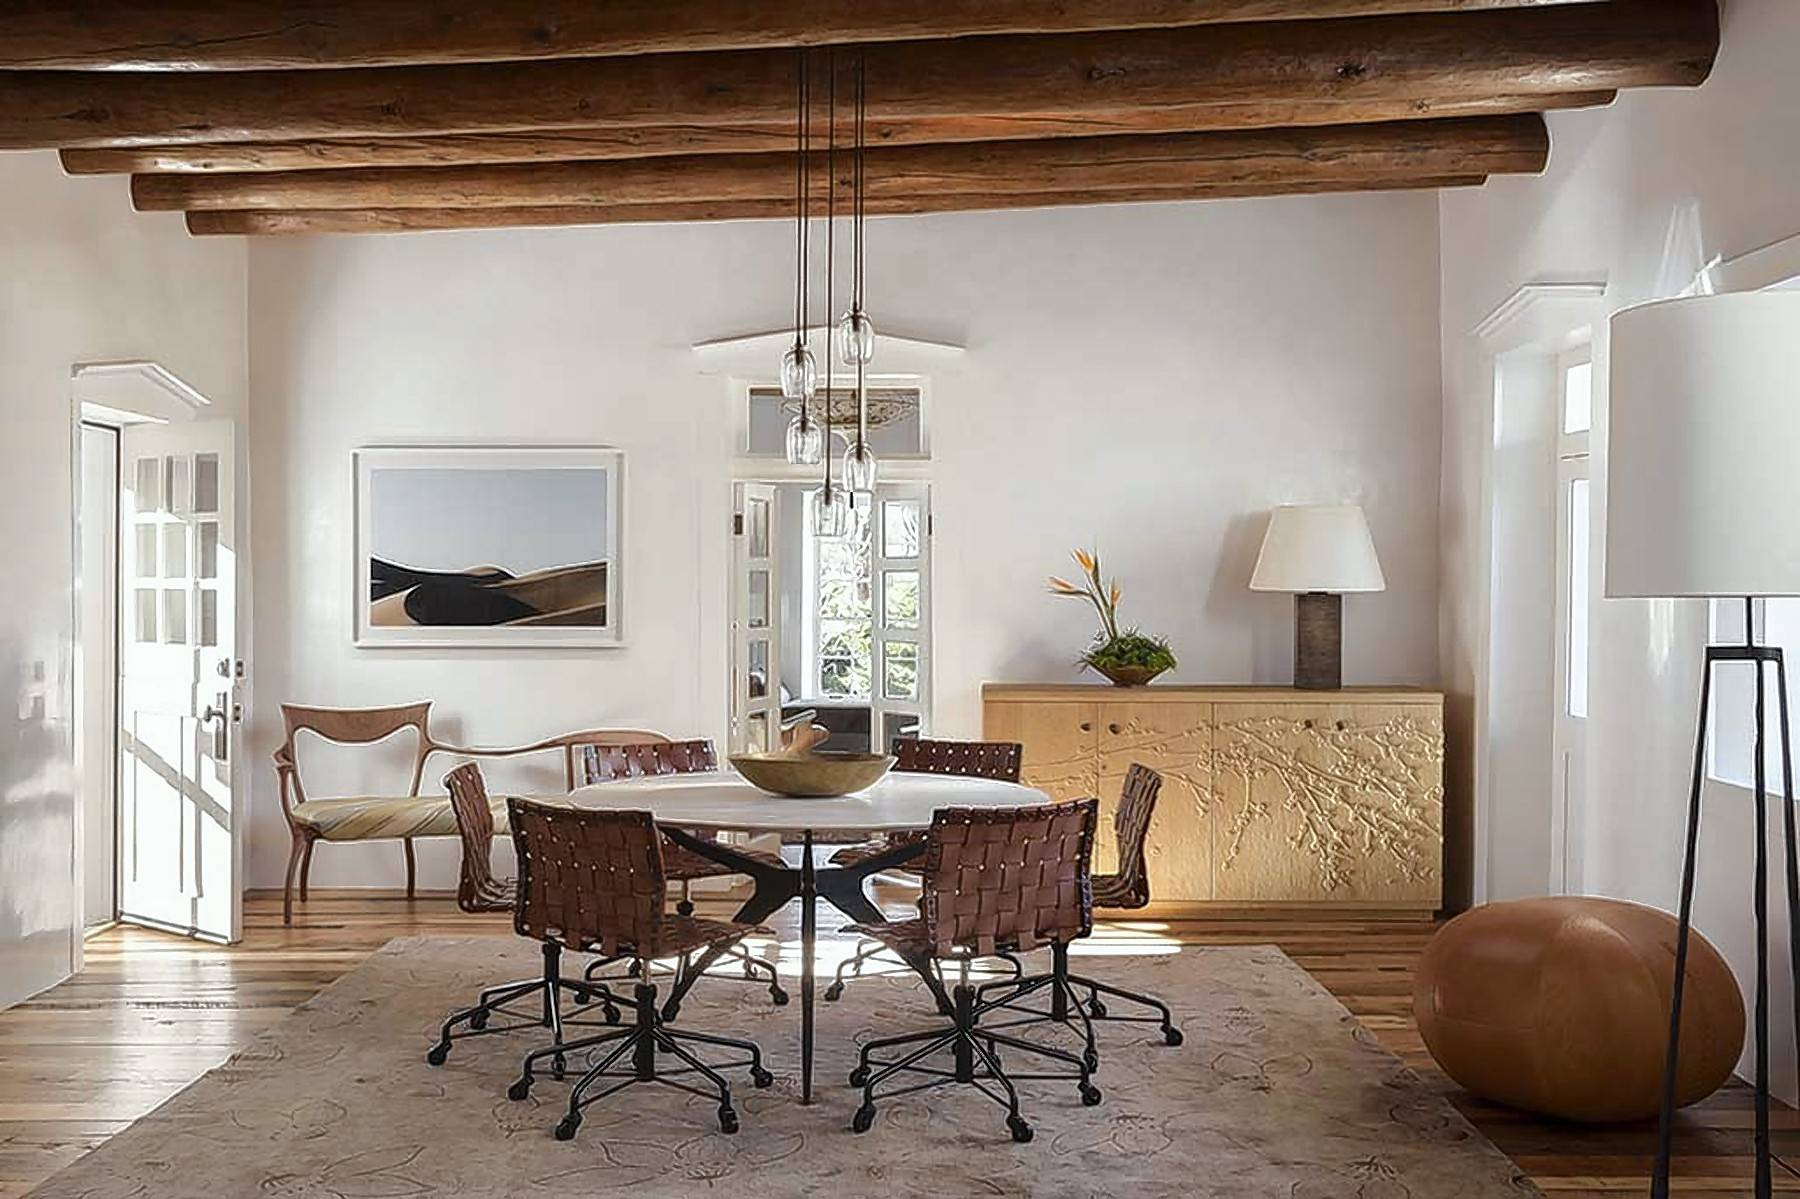 Santa Fe Style Has Evolved And Is Making A Comeback By Influencing Home  Design With Rustic